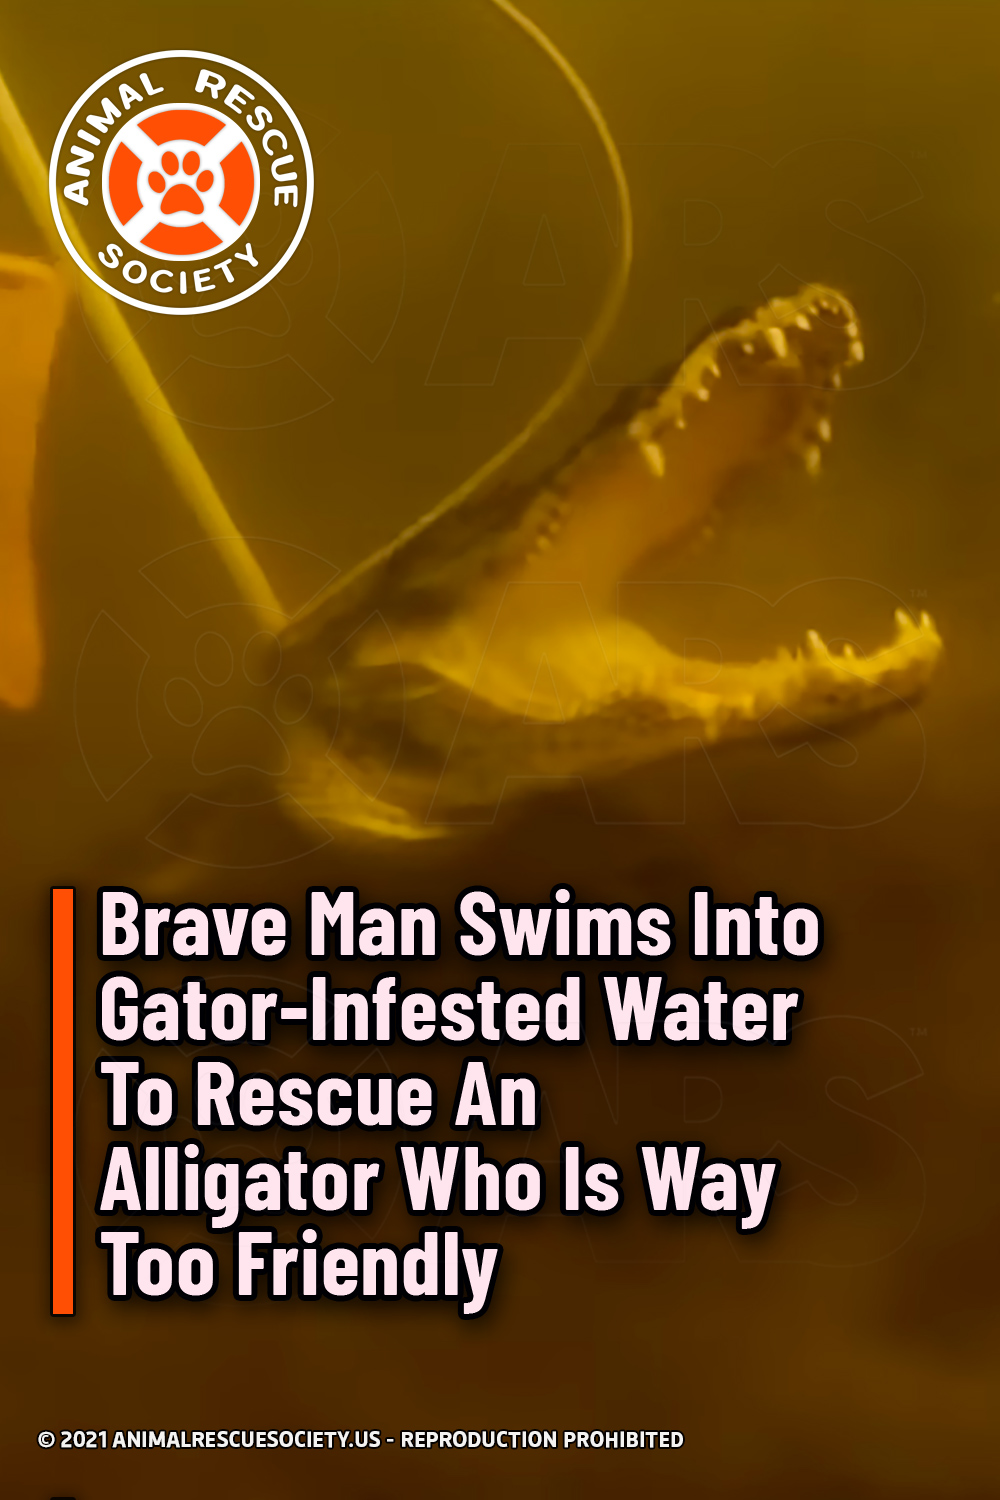 Brave Man Swims Into Gator-Infested Water To Rescue An Alligator Who Is Way Too Friendly